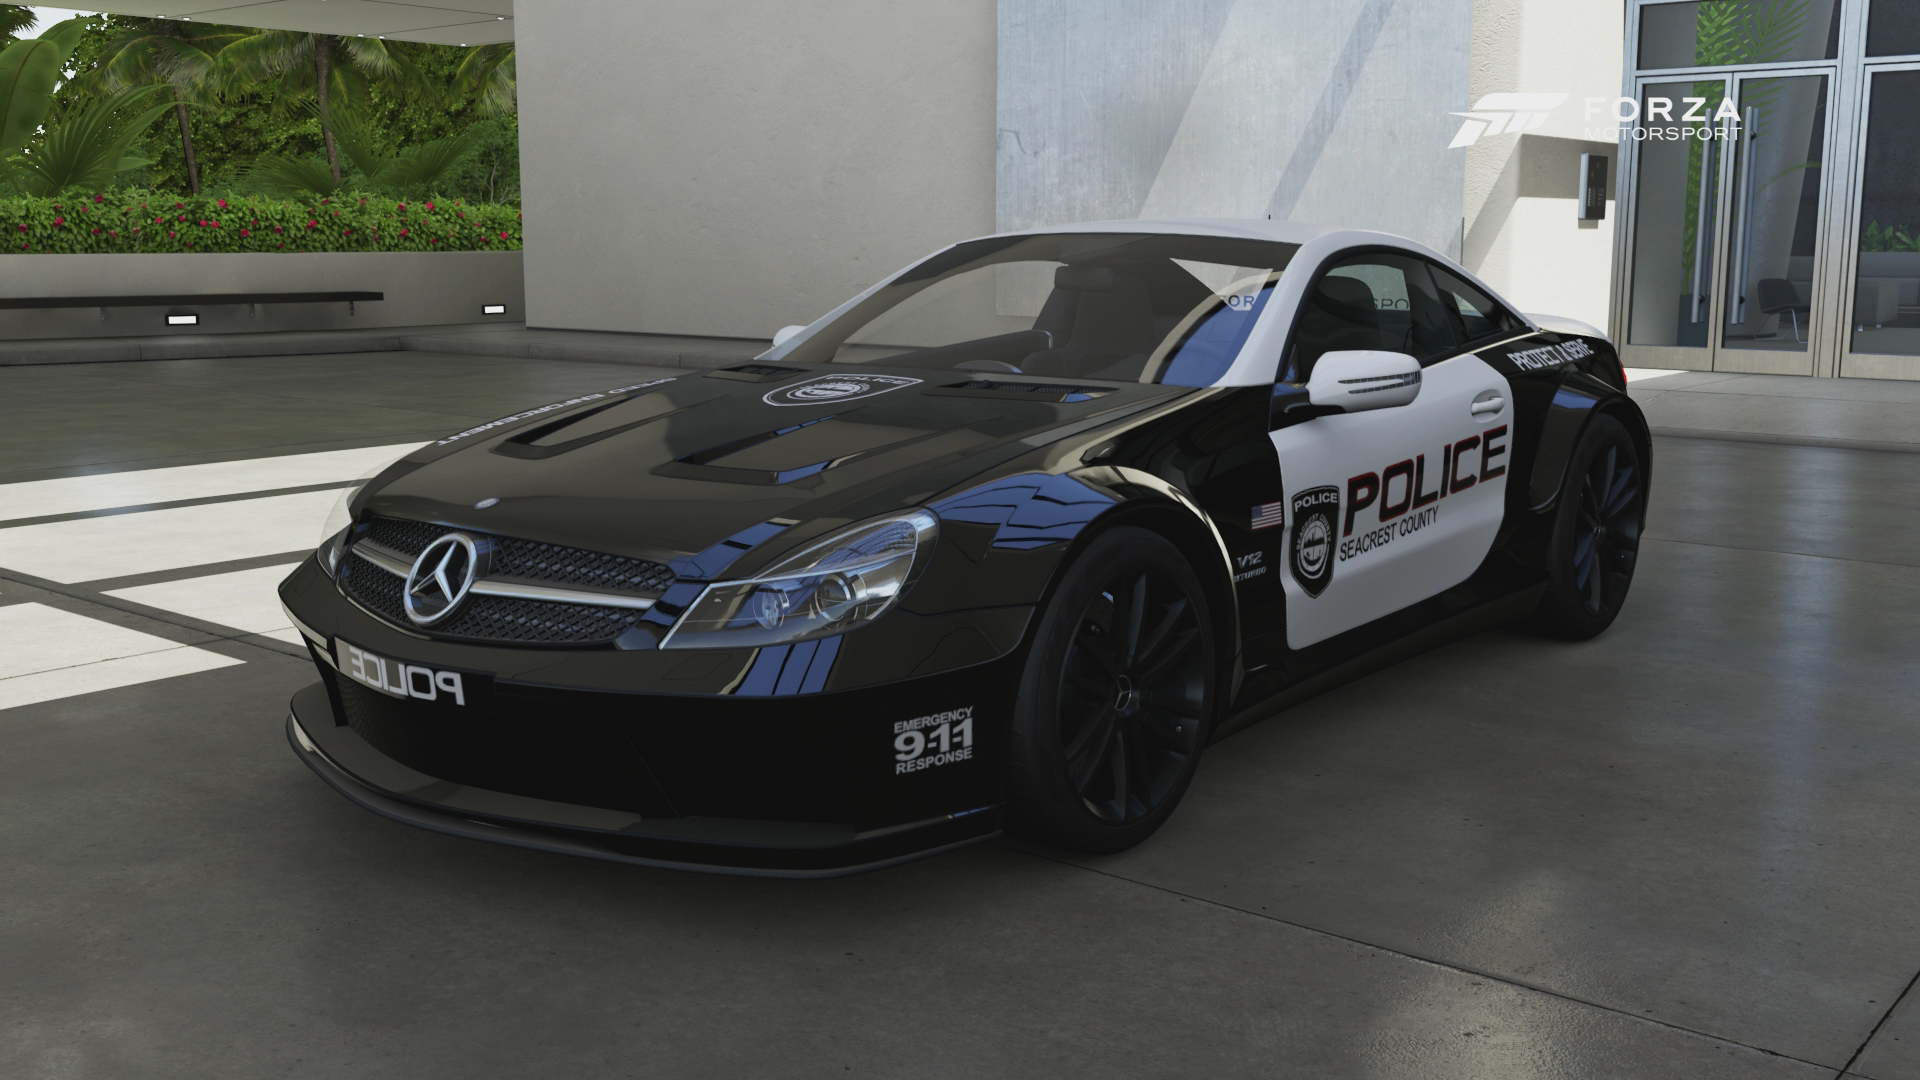 Scpd 2009 mercedes sl65 amg black series front by for 2009 mercedes benz sl65 amg black series